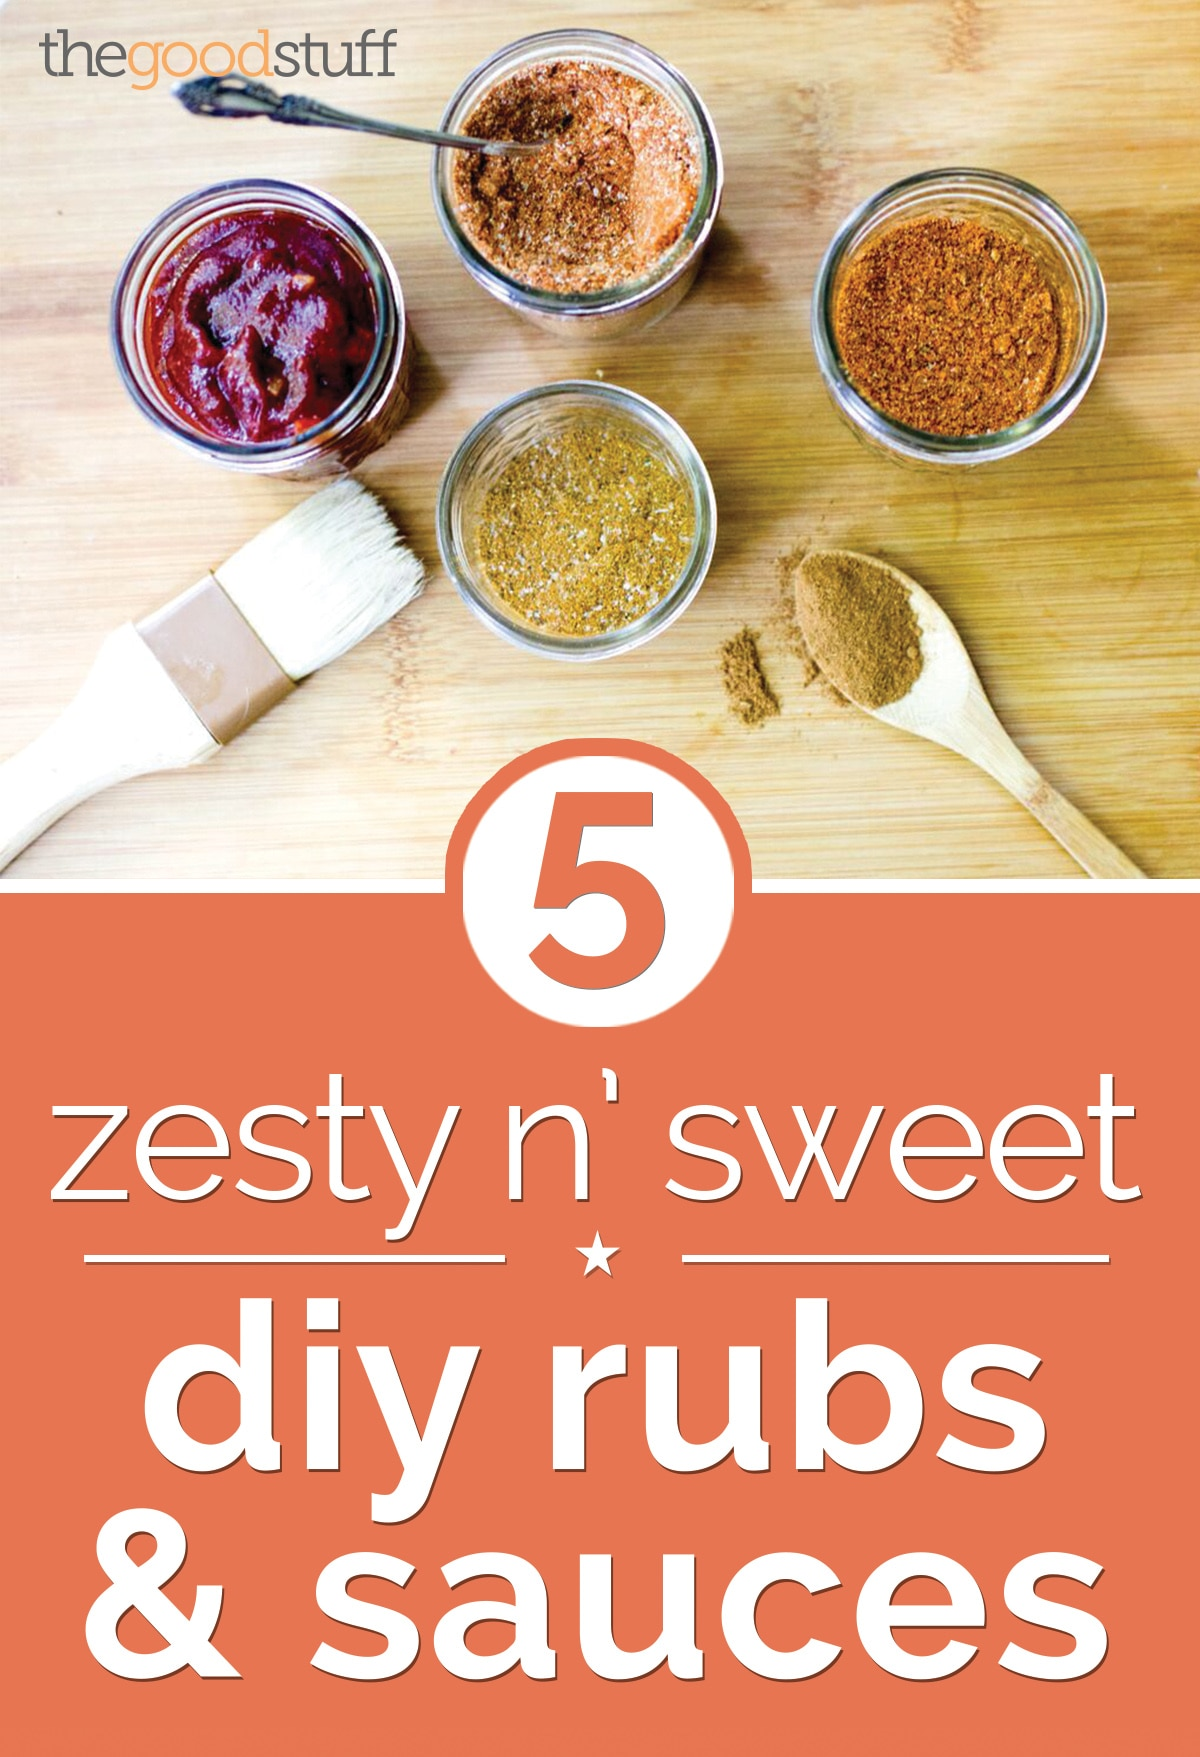 Clean Out Your Pantry: 5 Zesty n' Sweet DIY Rubs & Sauces | thegoodstuff